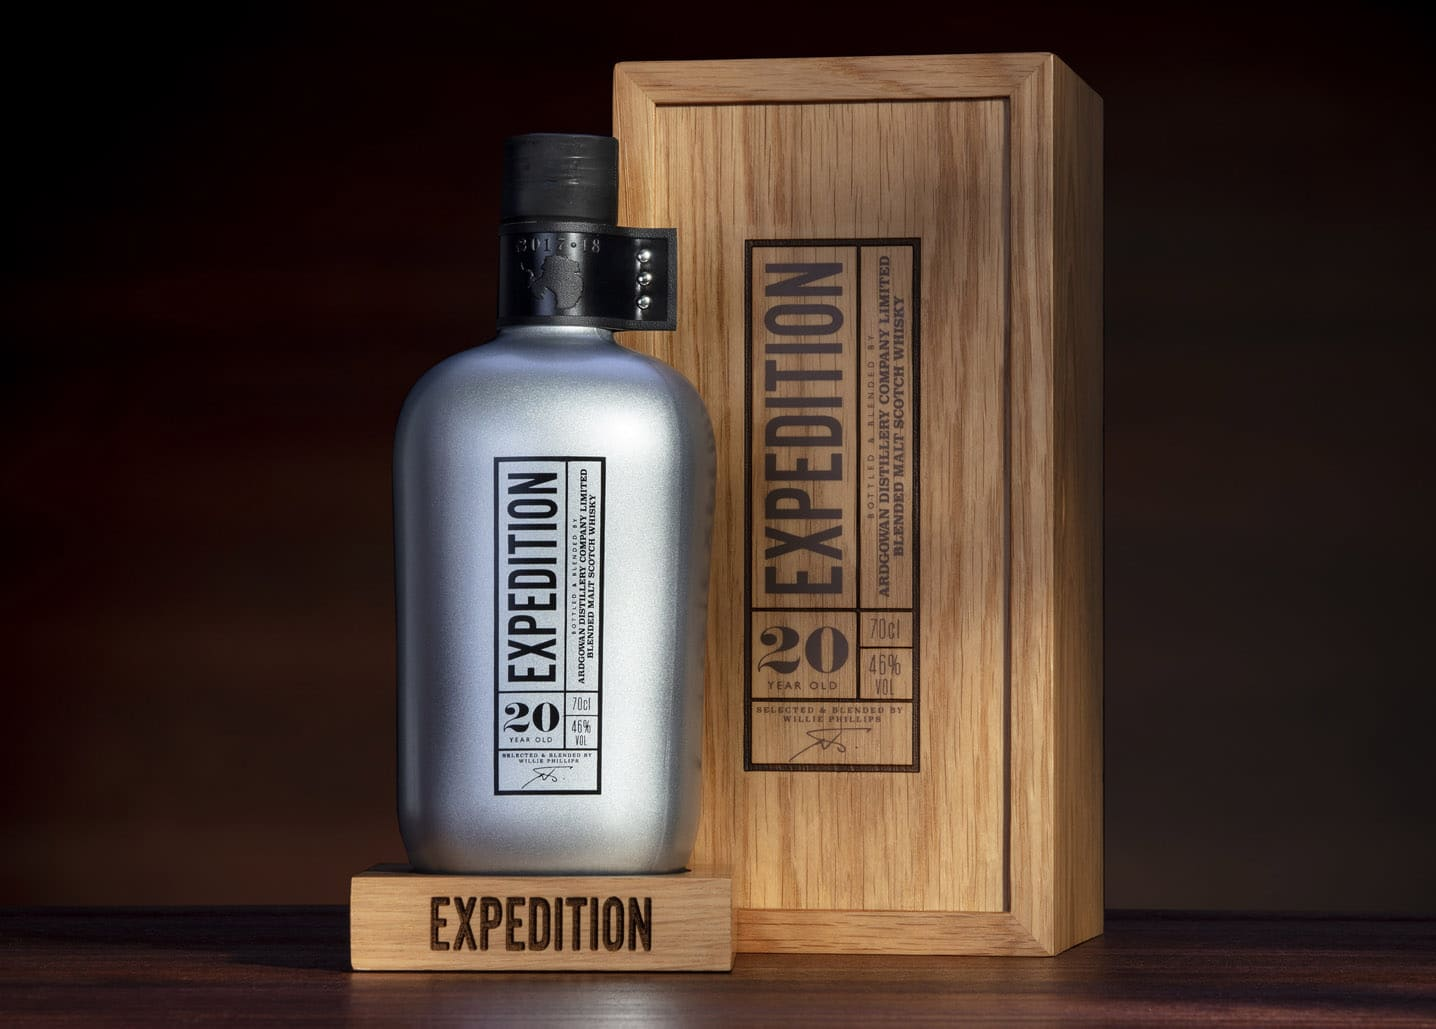 Ardgowan Expedition - Todo Whisky